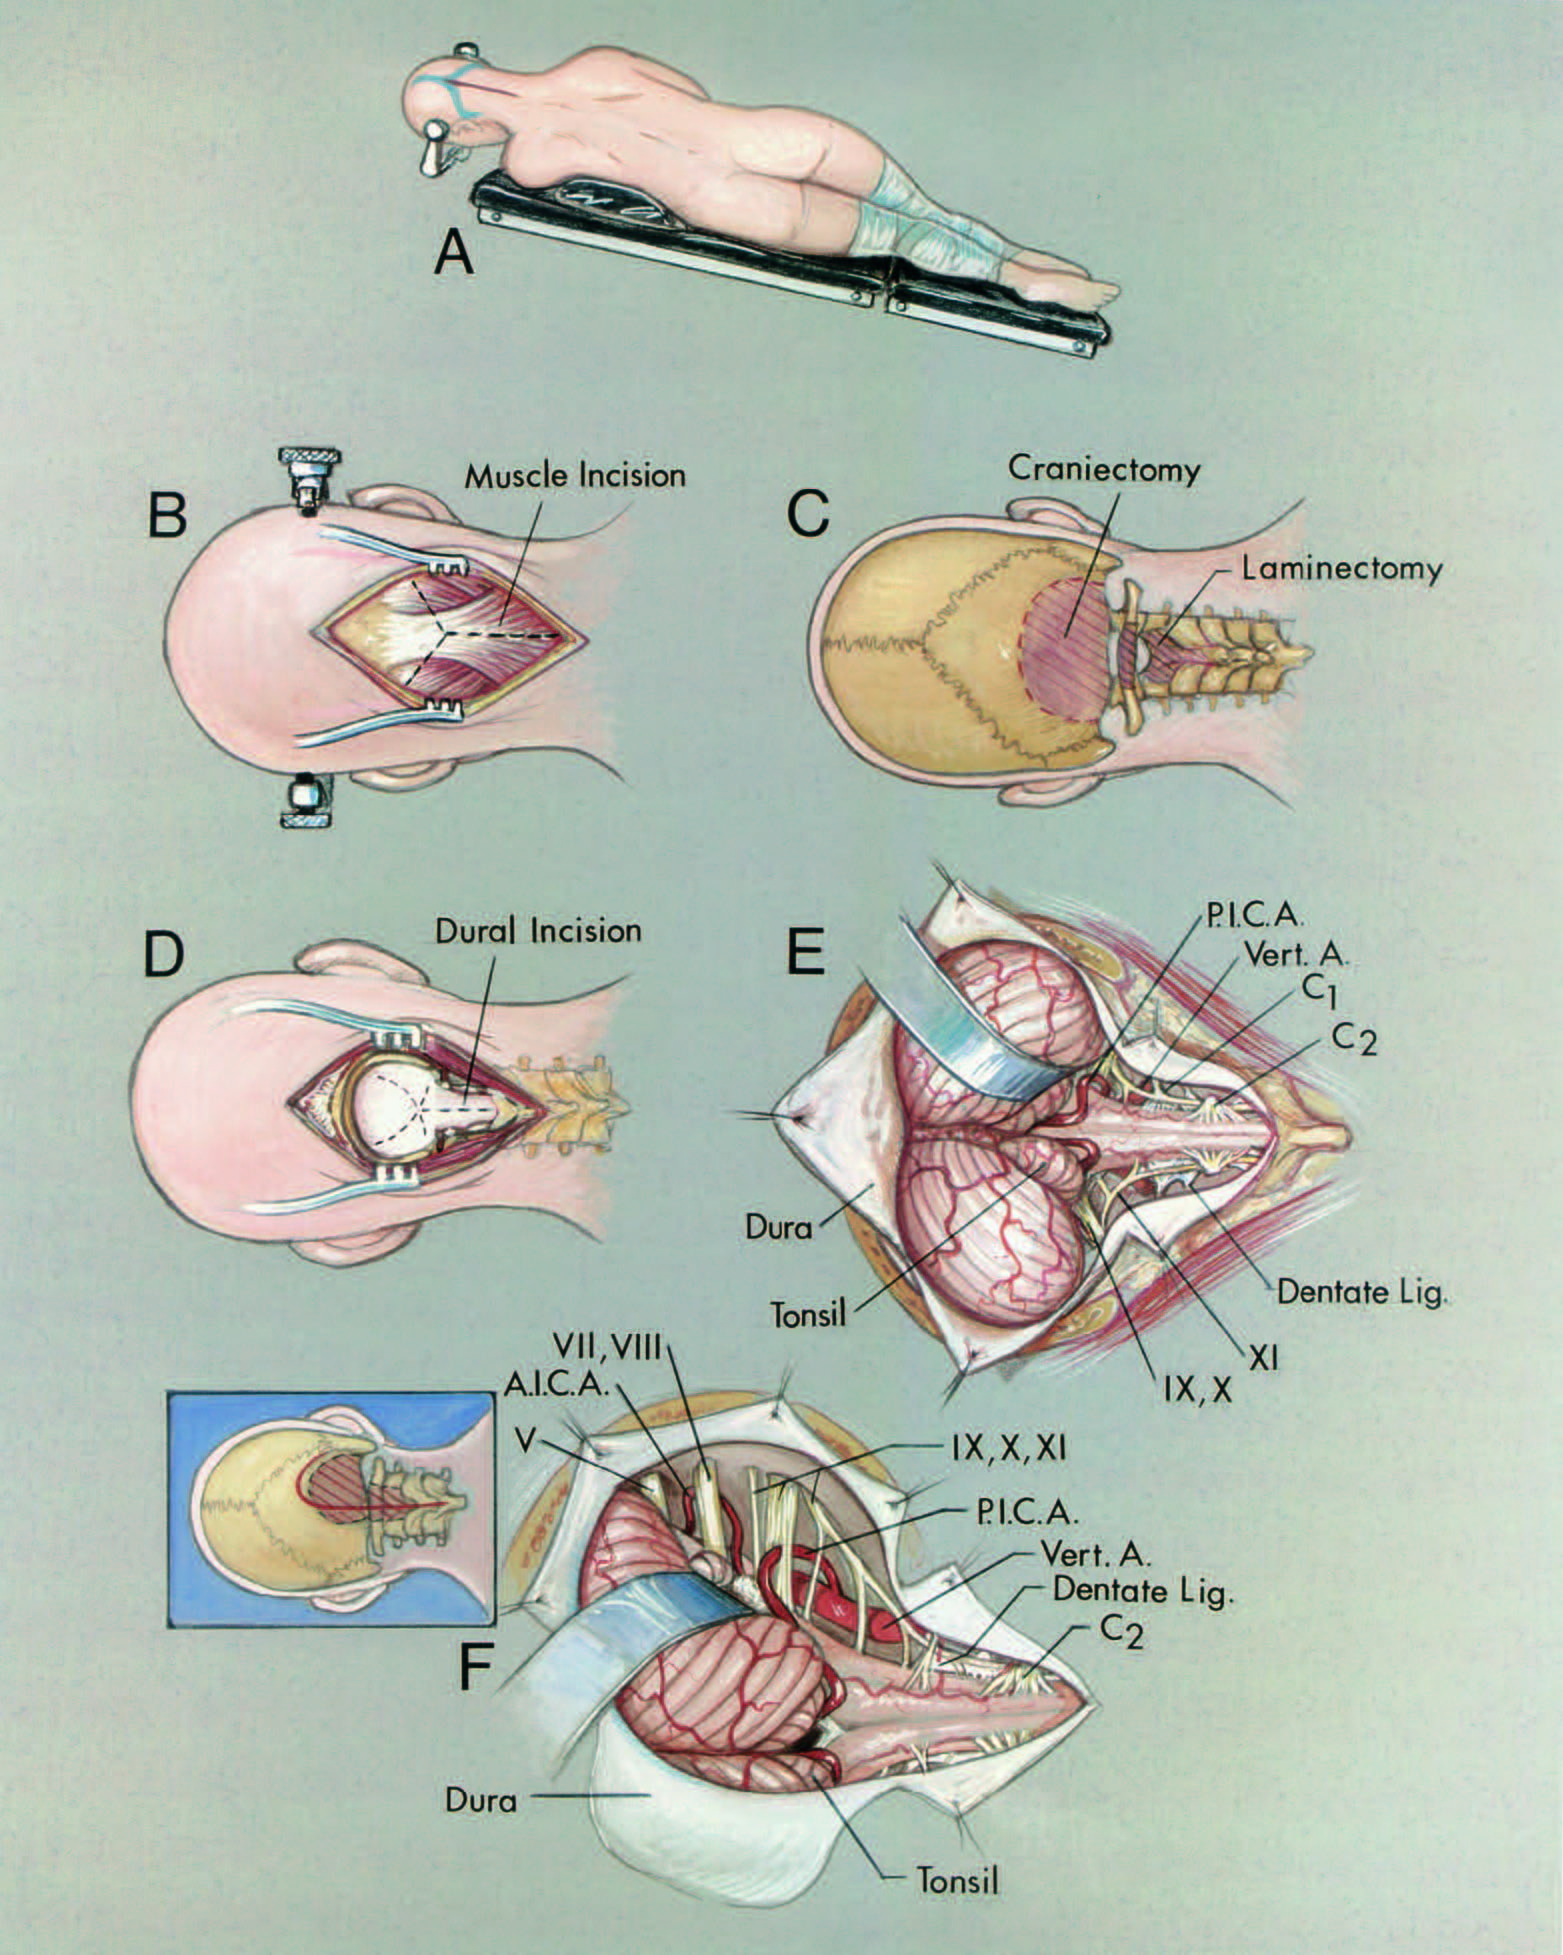 "FIGURE 6.8. Suboccipital approaches. Either a vertical midline or hockey-stick incision is used, depending on the site of the lesion. A, the patient is most commonly placed in the three-quarter prone position. B, the vertical midline incision is selected for lesions situated in the upper spinal canal and for those located posteriorly or posterolaterally in the area above the foramen magnum. The subcutaneous tissues are separated from the underlying fascia near the inion to gain room for a Y- shaped incision in the muscles. The upper limbs of the ""Y"" begin at the level of the superior nuchal line and join below the inion. C, the incision is of sufficient length to complete a suboccipital craniectomy and a laminectomy of the axis and atlas (oblique lines). D, the dural incision is outlined (interrupted lines). E, intradural exposure. The major extracranial hazard is injury to the vertebral artery as it courses below the atlantoaxial joint and across the posterior arch of the atlas. The vertebral arteries and PICAs are in the lower part of the exposure. The accessory nerve ascends posterior to the dentate ligament. The glossopharyngeal, vagus, and accessory nerves pass toward the jugular foramen. F, upper left. Hockey-stick retrosigmoid exposure. Skin incision (solid line) and bone removal (oblique lines). Lower right. Intradural exposure. The hockey-stick incision extends superomedial from the mastoid process along the superior nuchal line to the inion and downward in the midline. This incision is selected if the lesion extends anterolateral or anterior to the brainstem toward the jugular foramen or cerebellopontine angle. This exposure permits the removal of the full posterior rim of the foramen magnum, the posterior elements of the atlas and axis, and, in addition, the ability to complete a unilateral suboccipital craniectomy of sufficient size to expose the anterolateral surface of the brainstem and the nerves in the cerebellopontine angle. Tumors in this area may extend upward through the cerebellomedullary fissure to be attached to the roof or floor of the fourth ventricle. Laterally situated tumors may be attached to the initial intradural segment of the vertebral artery and the thick dural cuff around the artery, which also incorporates the posterior spinal arteries and the C1 nerve root in fibrous tissue. As one moves superiorly along the lateral surface of the medulla, the origin of the PICA and the glossopharyngeal, vagus, accessory, facial, vestibulocochlear, and trigeminal nerves are encountered. The dura is closed with a dural substitute if closure of the patient's dura constricts the cerebellar tonsils or the cervicomedullary junction. A., artery; A.I.C.A., anteroinferior cerebellar artery; Lig., ligament; P.I.C.A., posteroinferior cerebellar artery; Vert., vertebral."